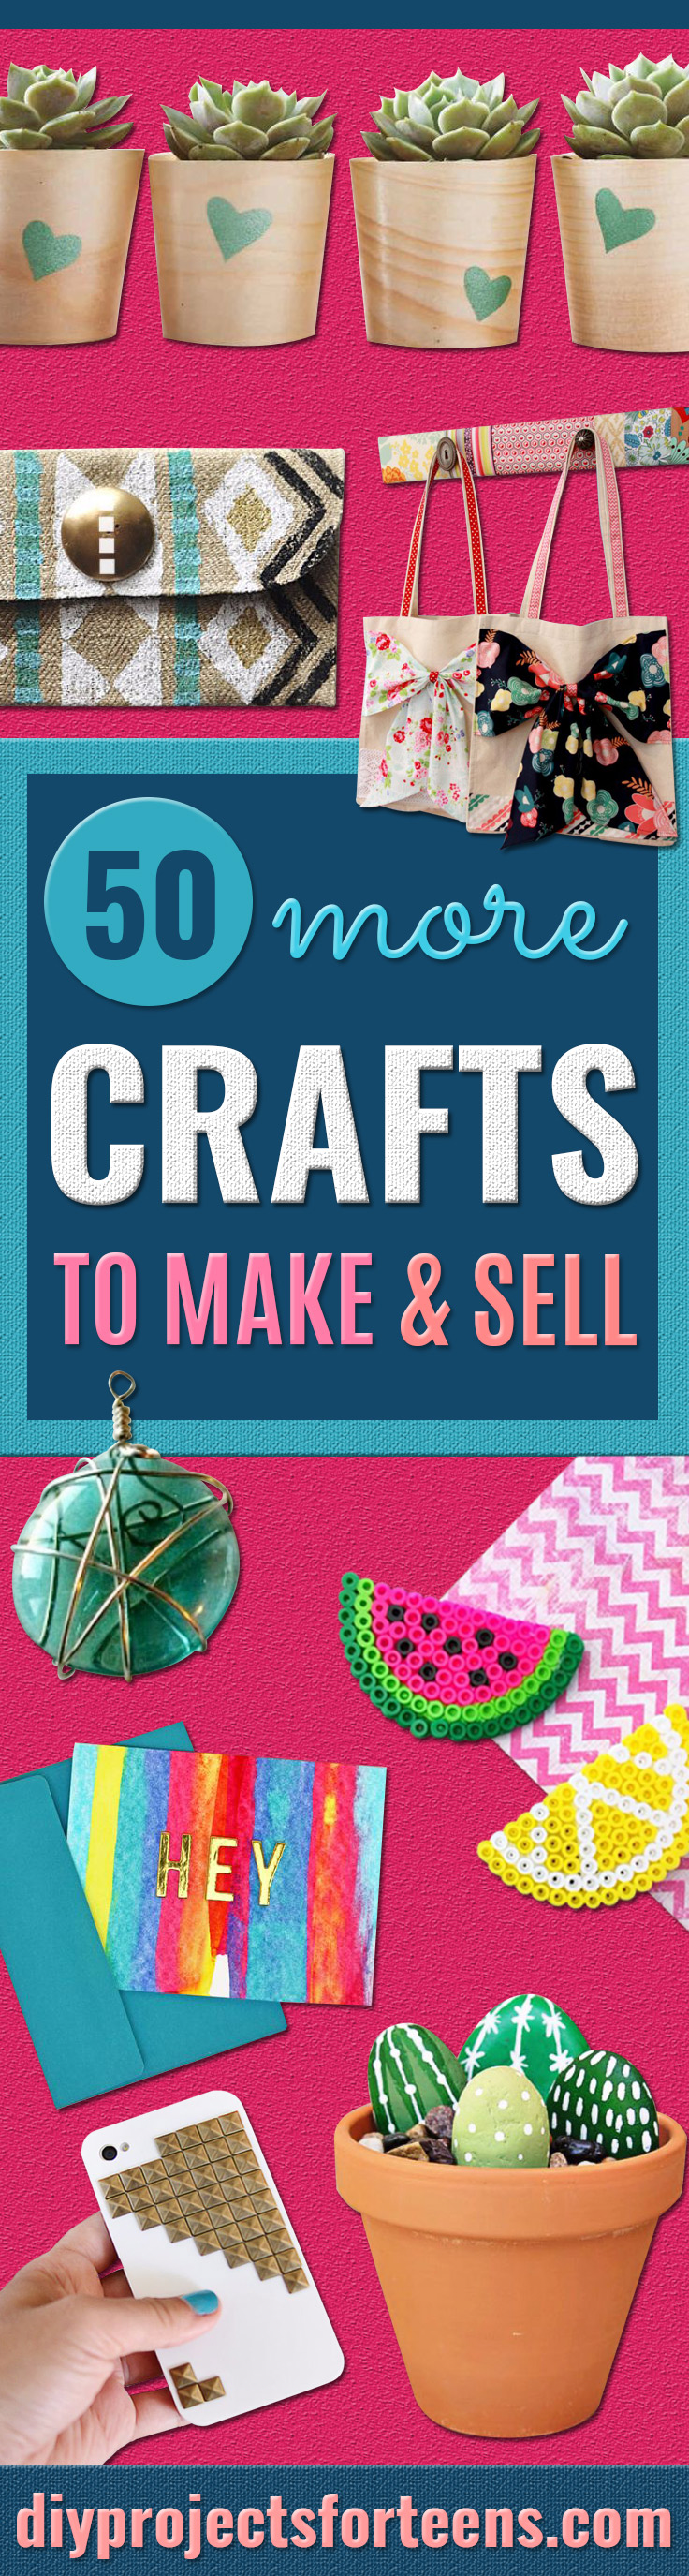 Crafts for Teens to Make and Sell - Cheap and Easy DIY Ideas To Make For Extra Money - Best Things to Sell On Etsy, Dollar Store Craft Ideas, Quick Projects for Teenagers To Make Spending Cash - DIY Gifts, Wall Art, School Supplies, Room Decor, Jewelry, Fashion, Hair Accessories, Bracelets, Magnets #teencrafts #craftstosell #etsyideass